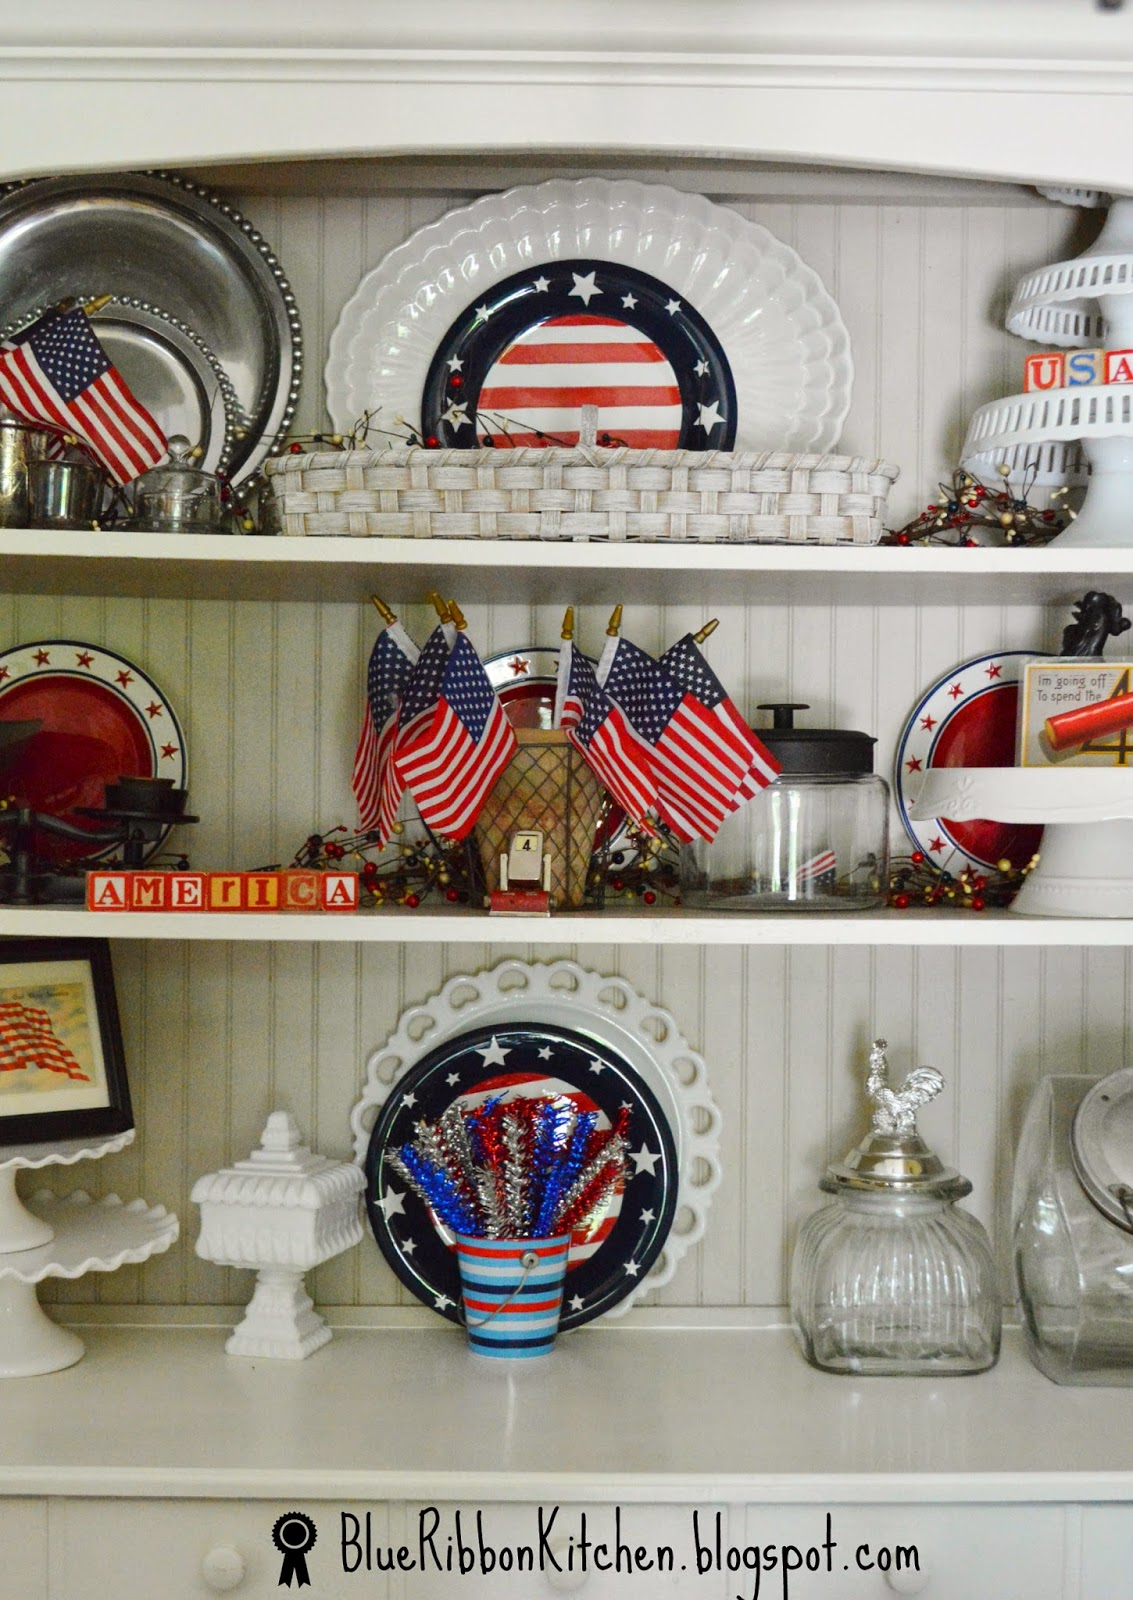 Patriotic kitchen - I Pick Up Antique Postcards With Strong Bold Graphics I Like To Frame Them And Add Them To Buffets And Place Settings I Don T Mind If The Corners Are